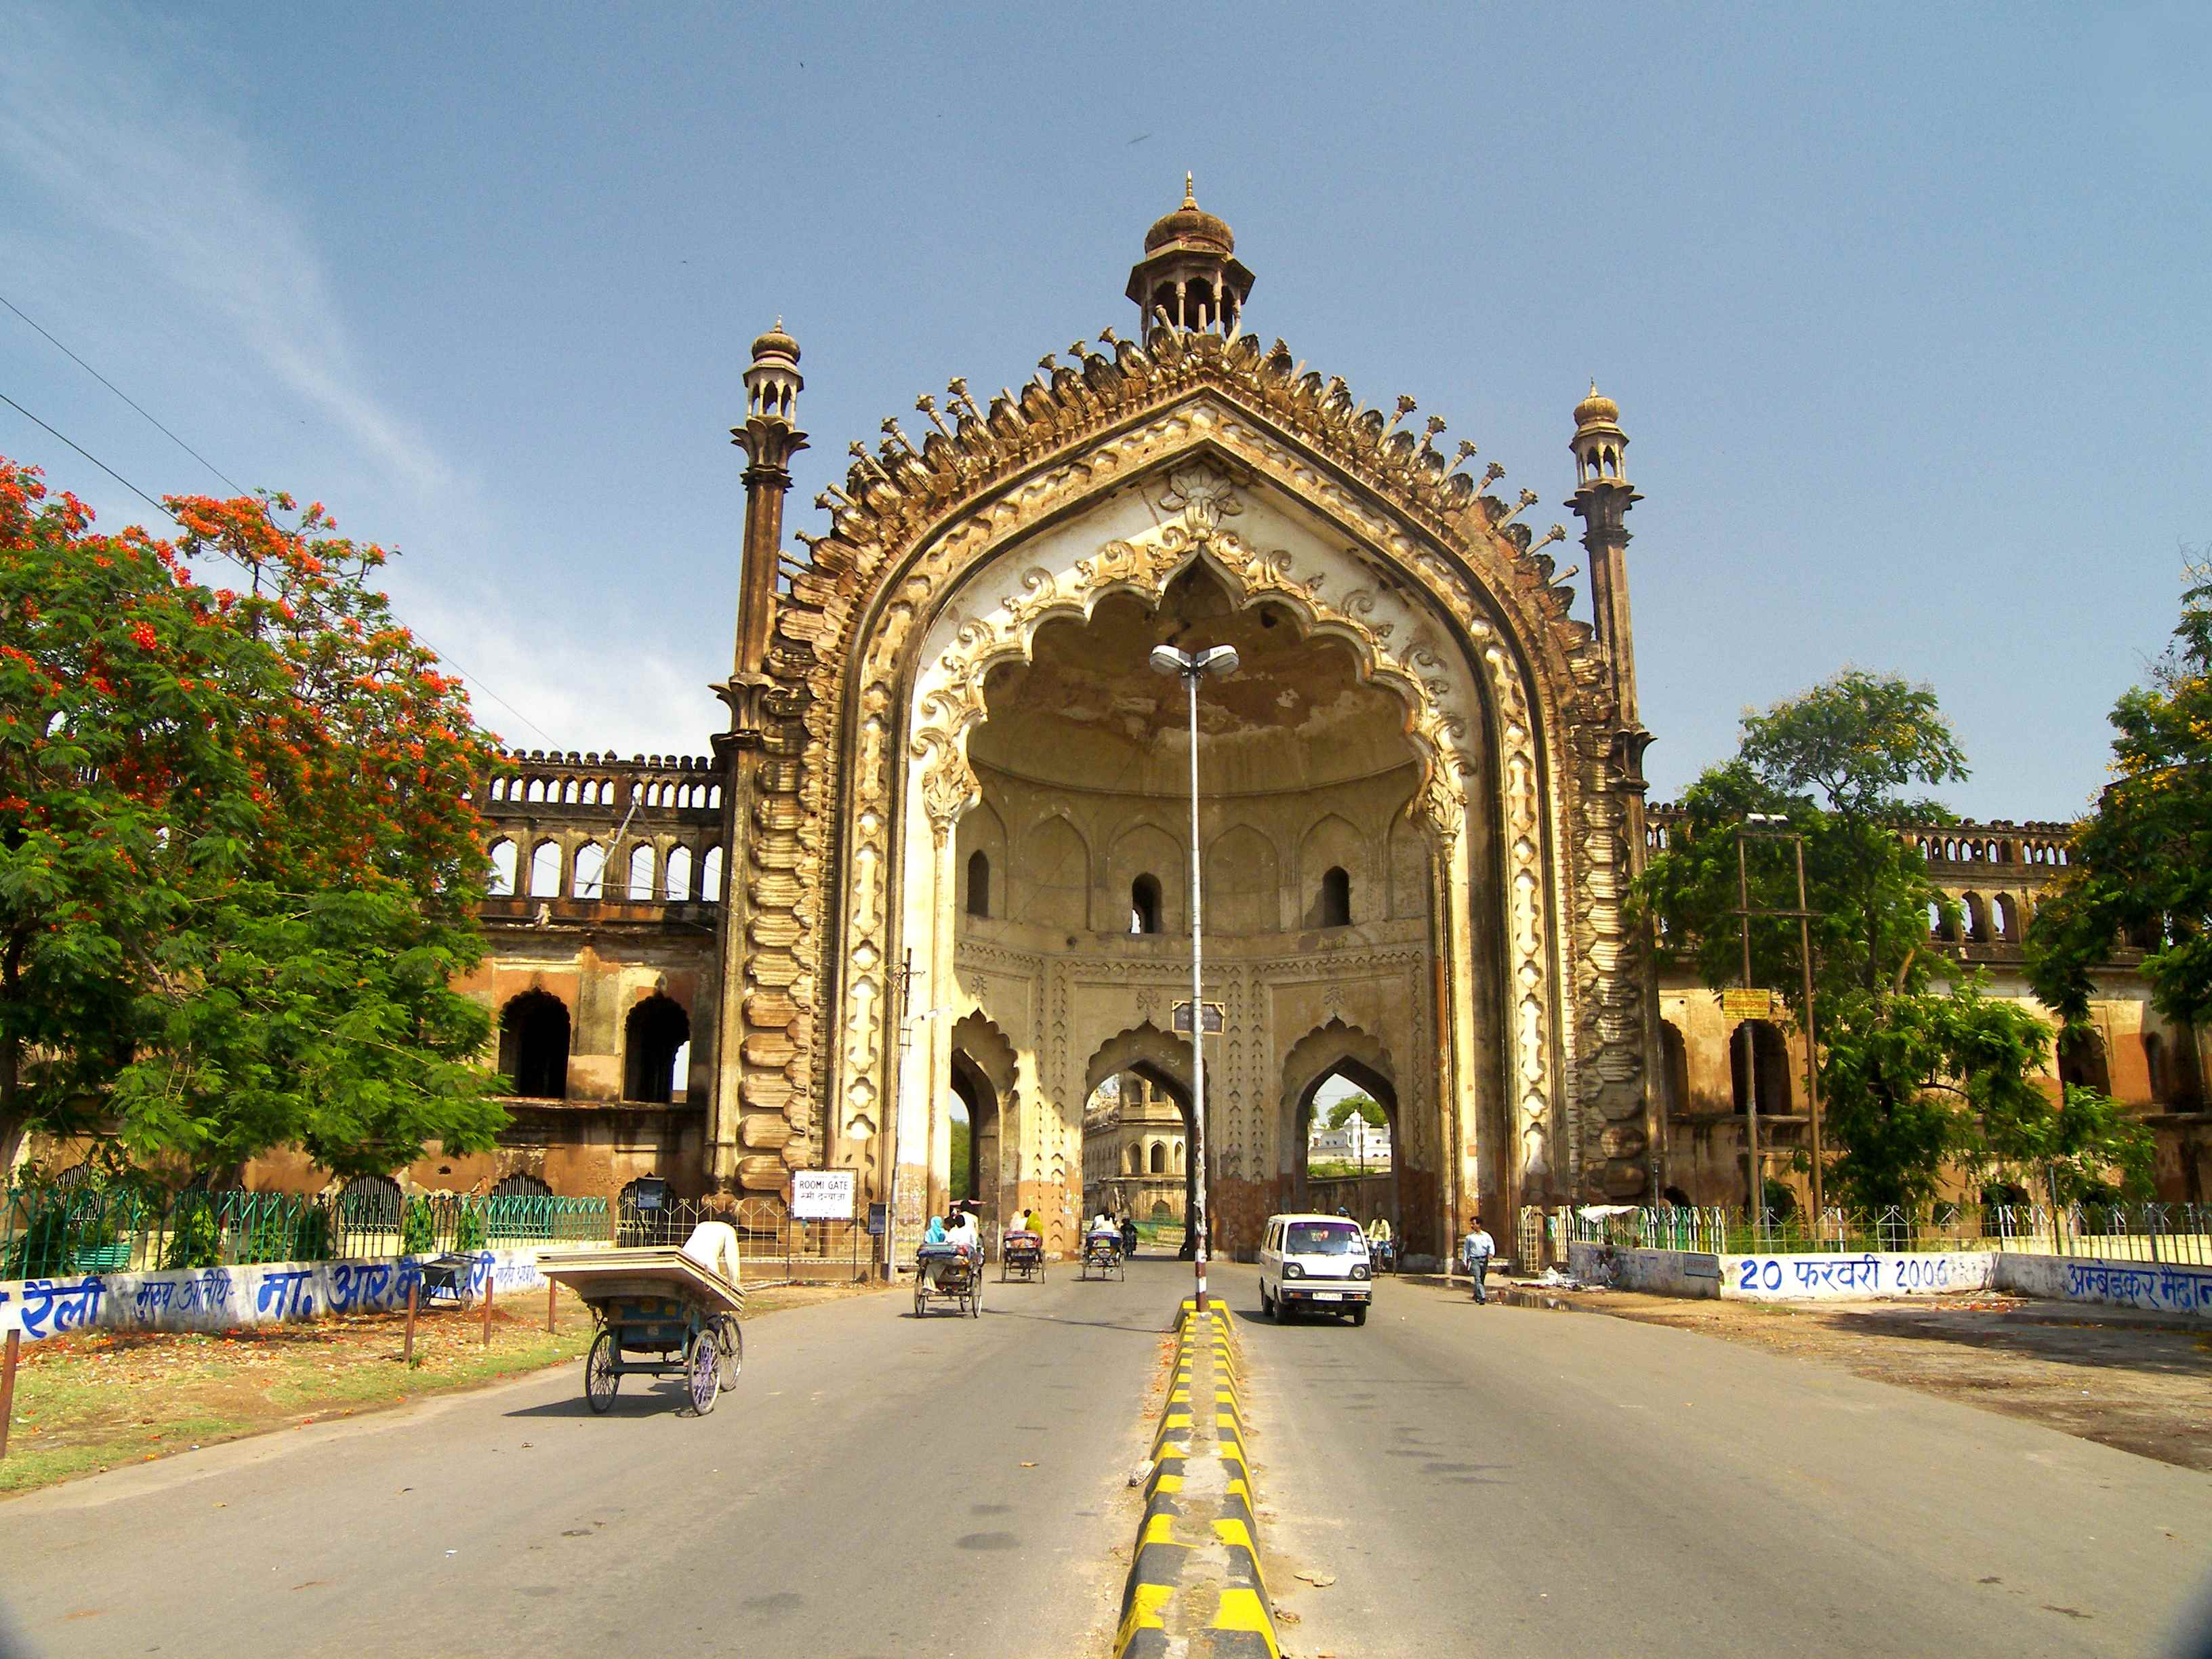 Rumi Darwaza Lucknow, RUMI DARWAZA - LUCKNOW Photos, Images and Wallpapers - MouthShut.com